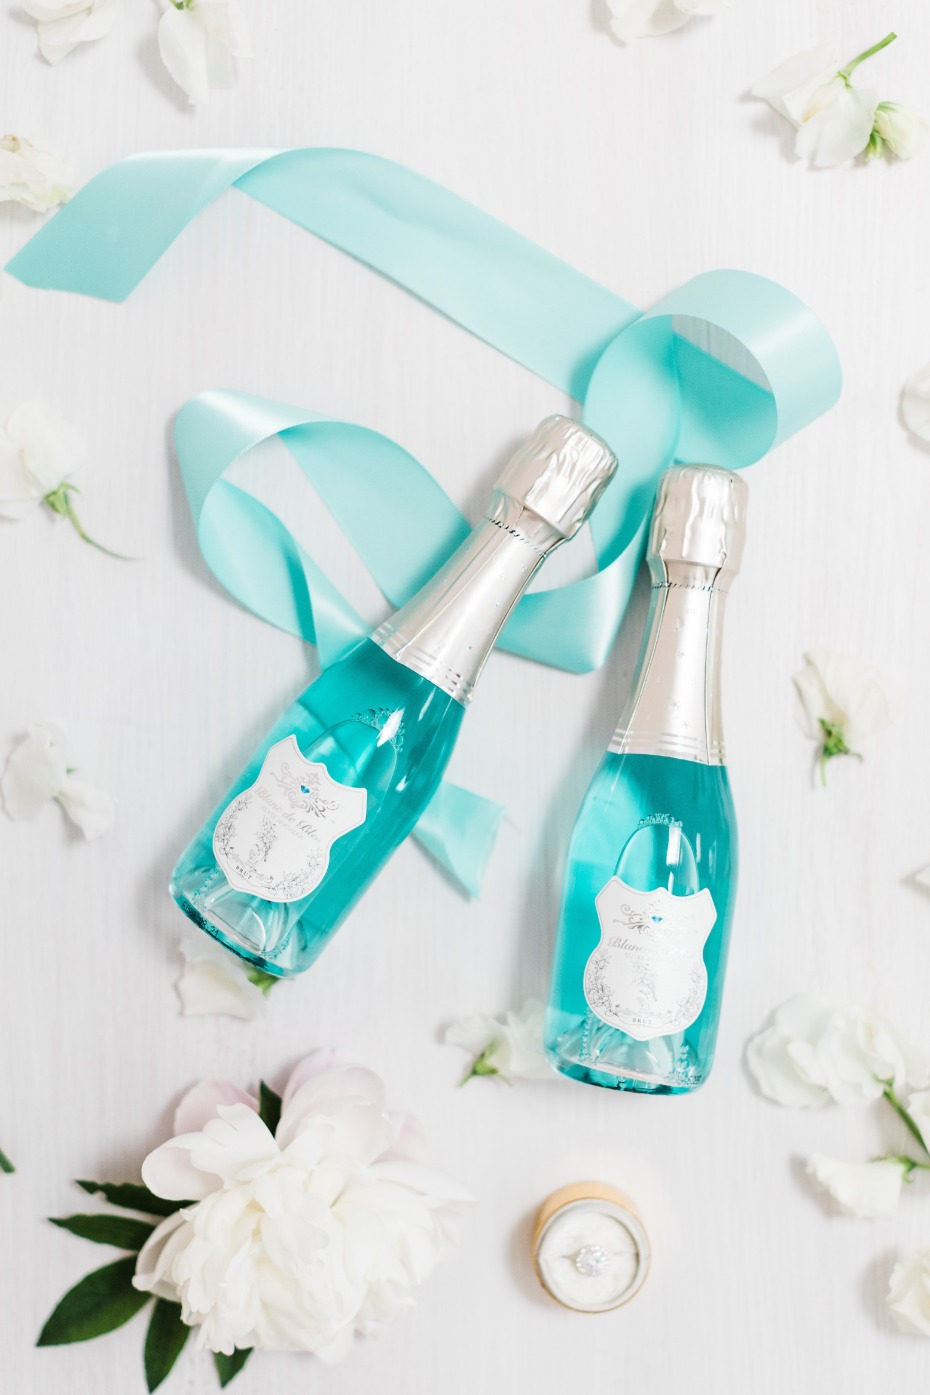 Blanc de Bleu Breakfast at Tiffany's Bridal Shower Mini Bottle Favors